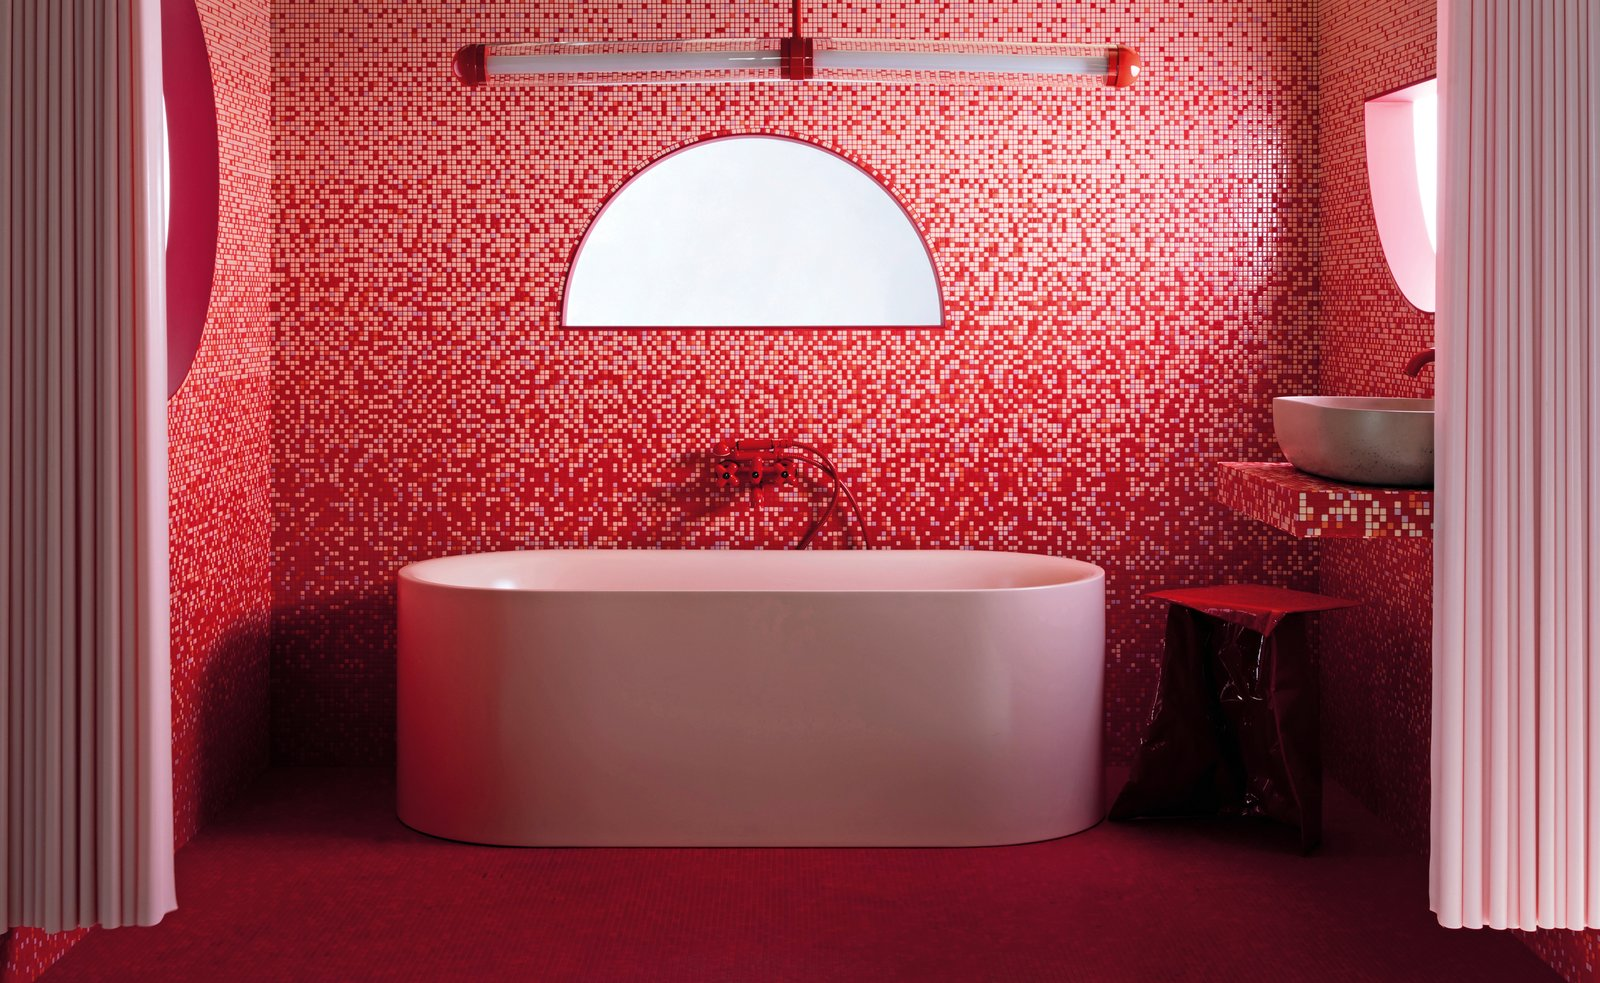 """Bath, Tile, Freestanding, Mosaic Tile, Pendant, and Vessel Bespoke mosaic tiles in several shades of matte and gloss pink, along with red Bisazza tiles, create a dramatic ombre effect in this bathroom. The light above the bath is a special-edition, red version of the 2LG Studio Capsule collection designed in collaboration with Cameron Design House, who noted that """"pink and red aren't a traditional color combination, but they work really well here.""""  Bath Mosaic Tile Tile Photos from Put Lipstick on Your Door: 5 Ways to Make Your Home Unapologetically Bold"""